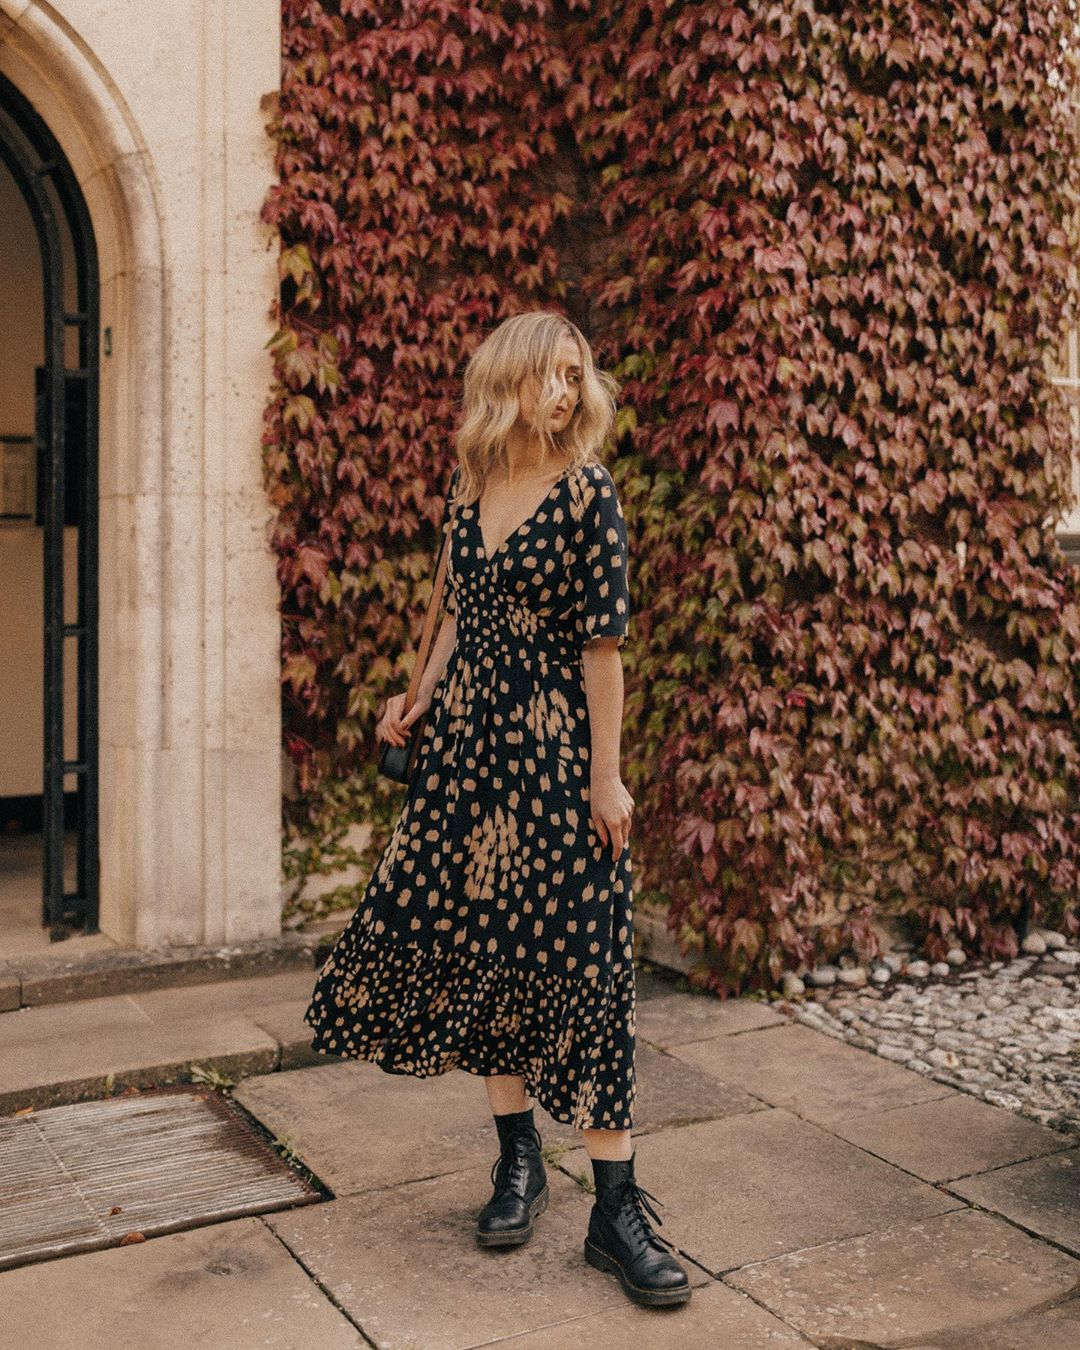 The (Mostly) Sustainable Autumn Capsule Wardrobe | crisp, romantic, beautiful wardrobe from sustainable brands | image source: @sarahmantelin